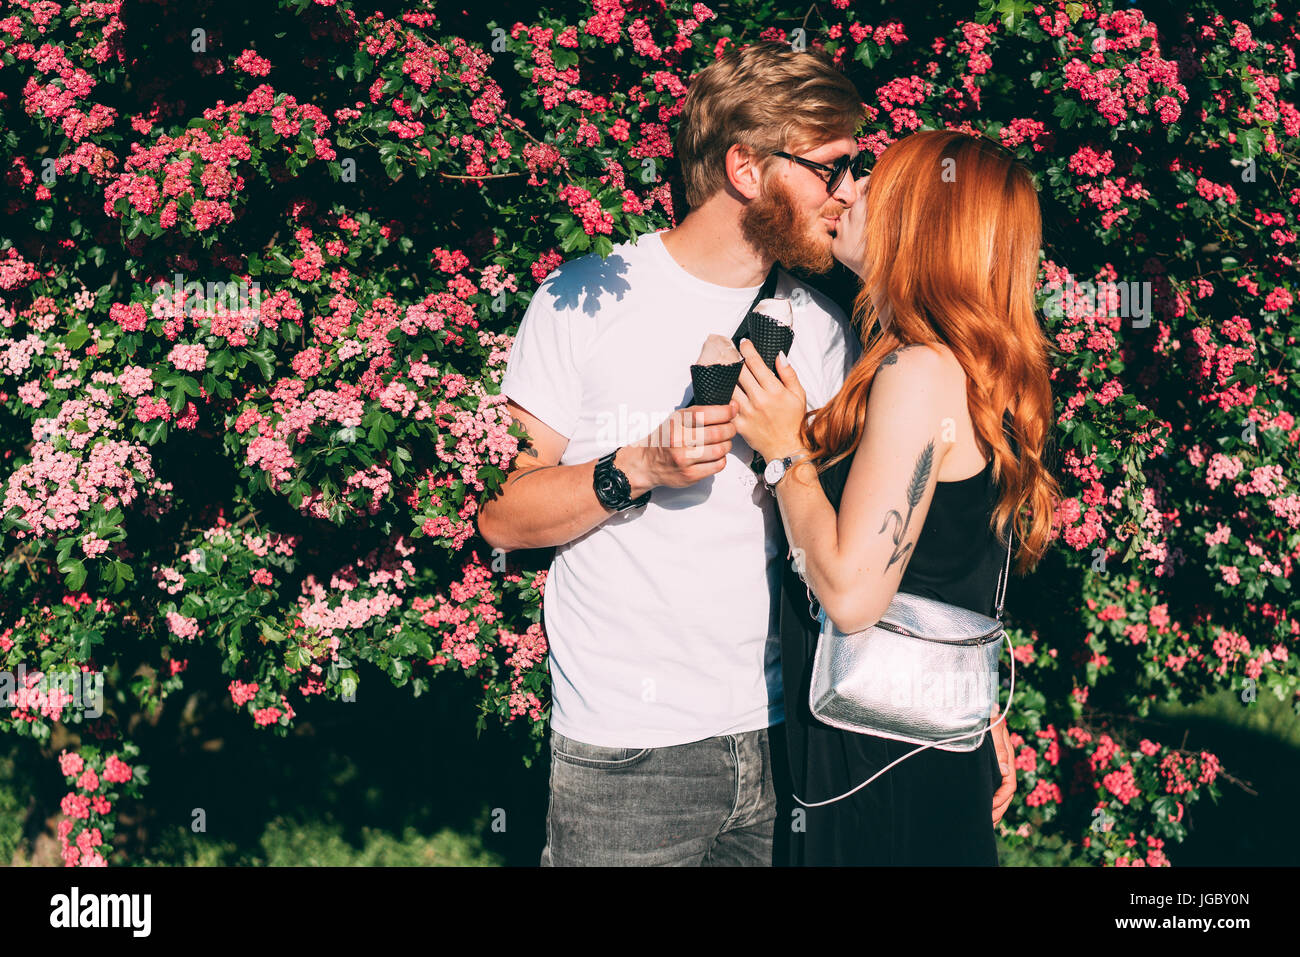 Couple in park eating ice cream cones - Stock Image